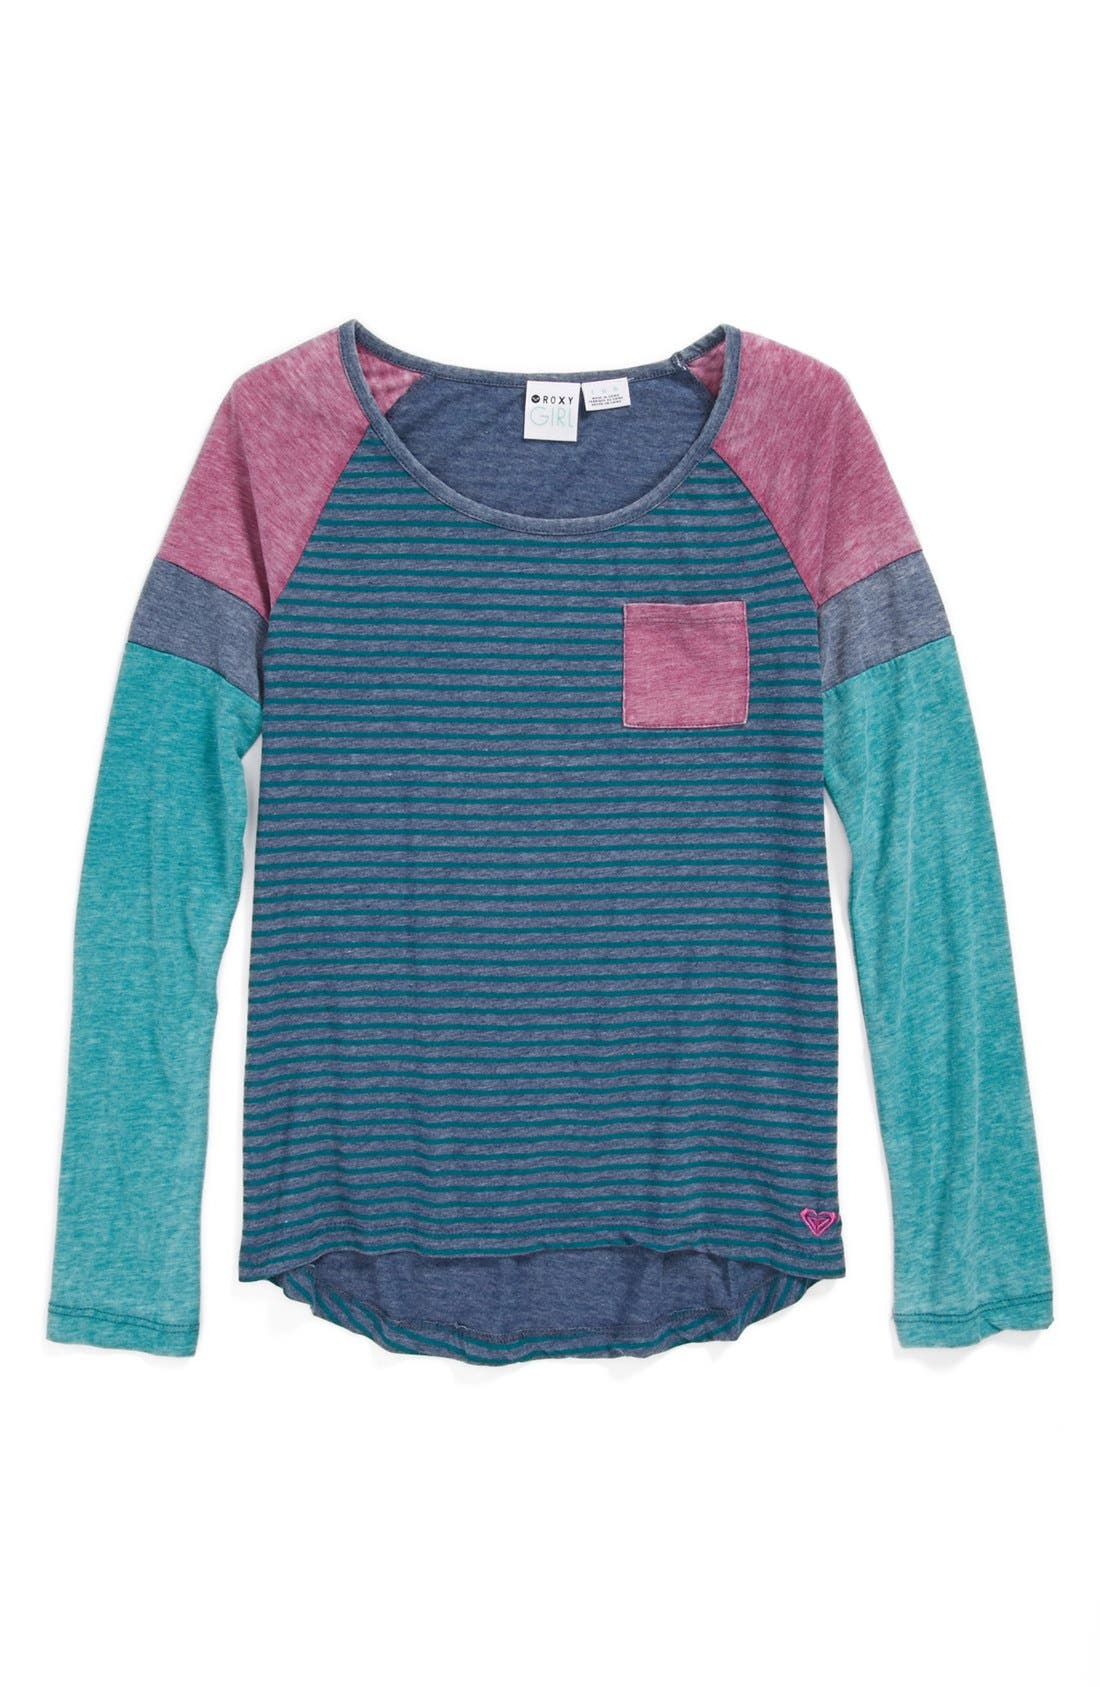 Alternate Image 1 Selected - Roxy 'Sandy Sunsets' Colorblock Tee (Toddler Girls)